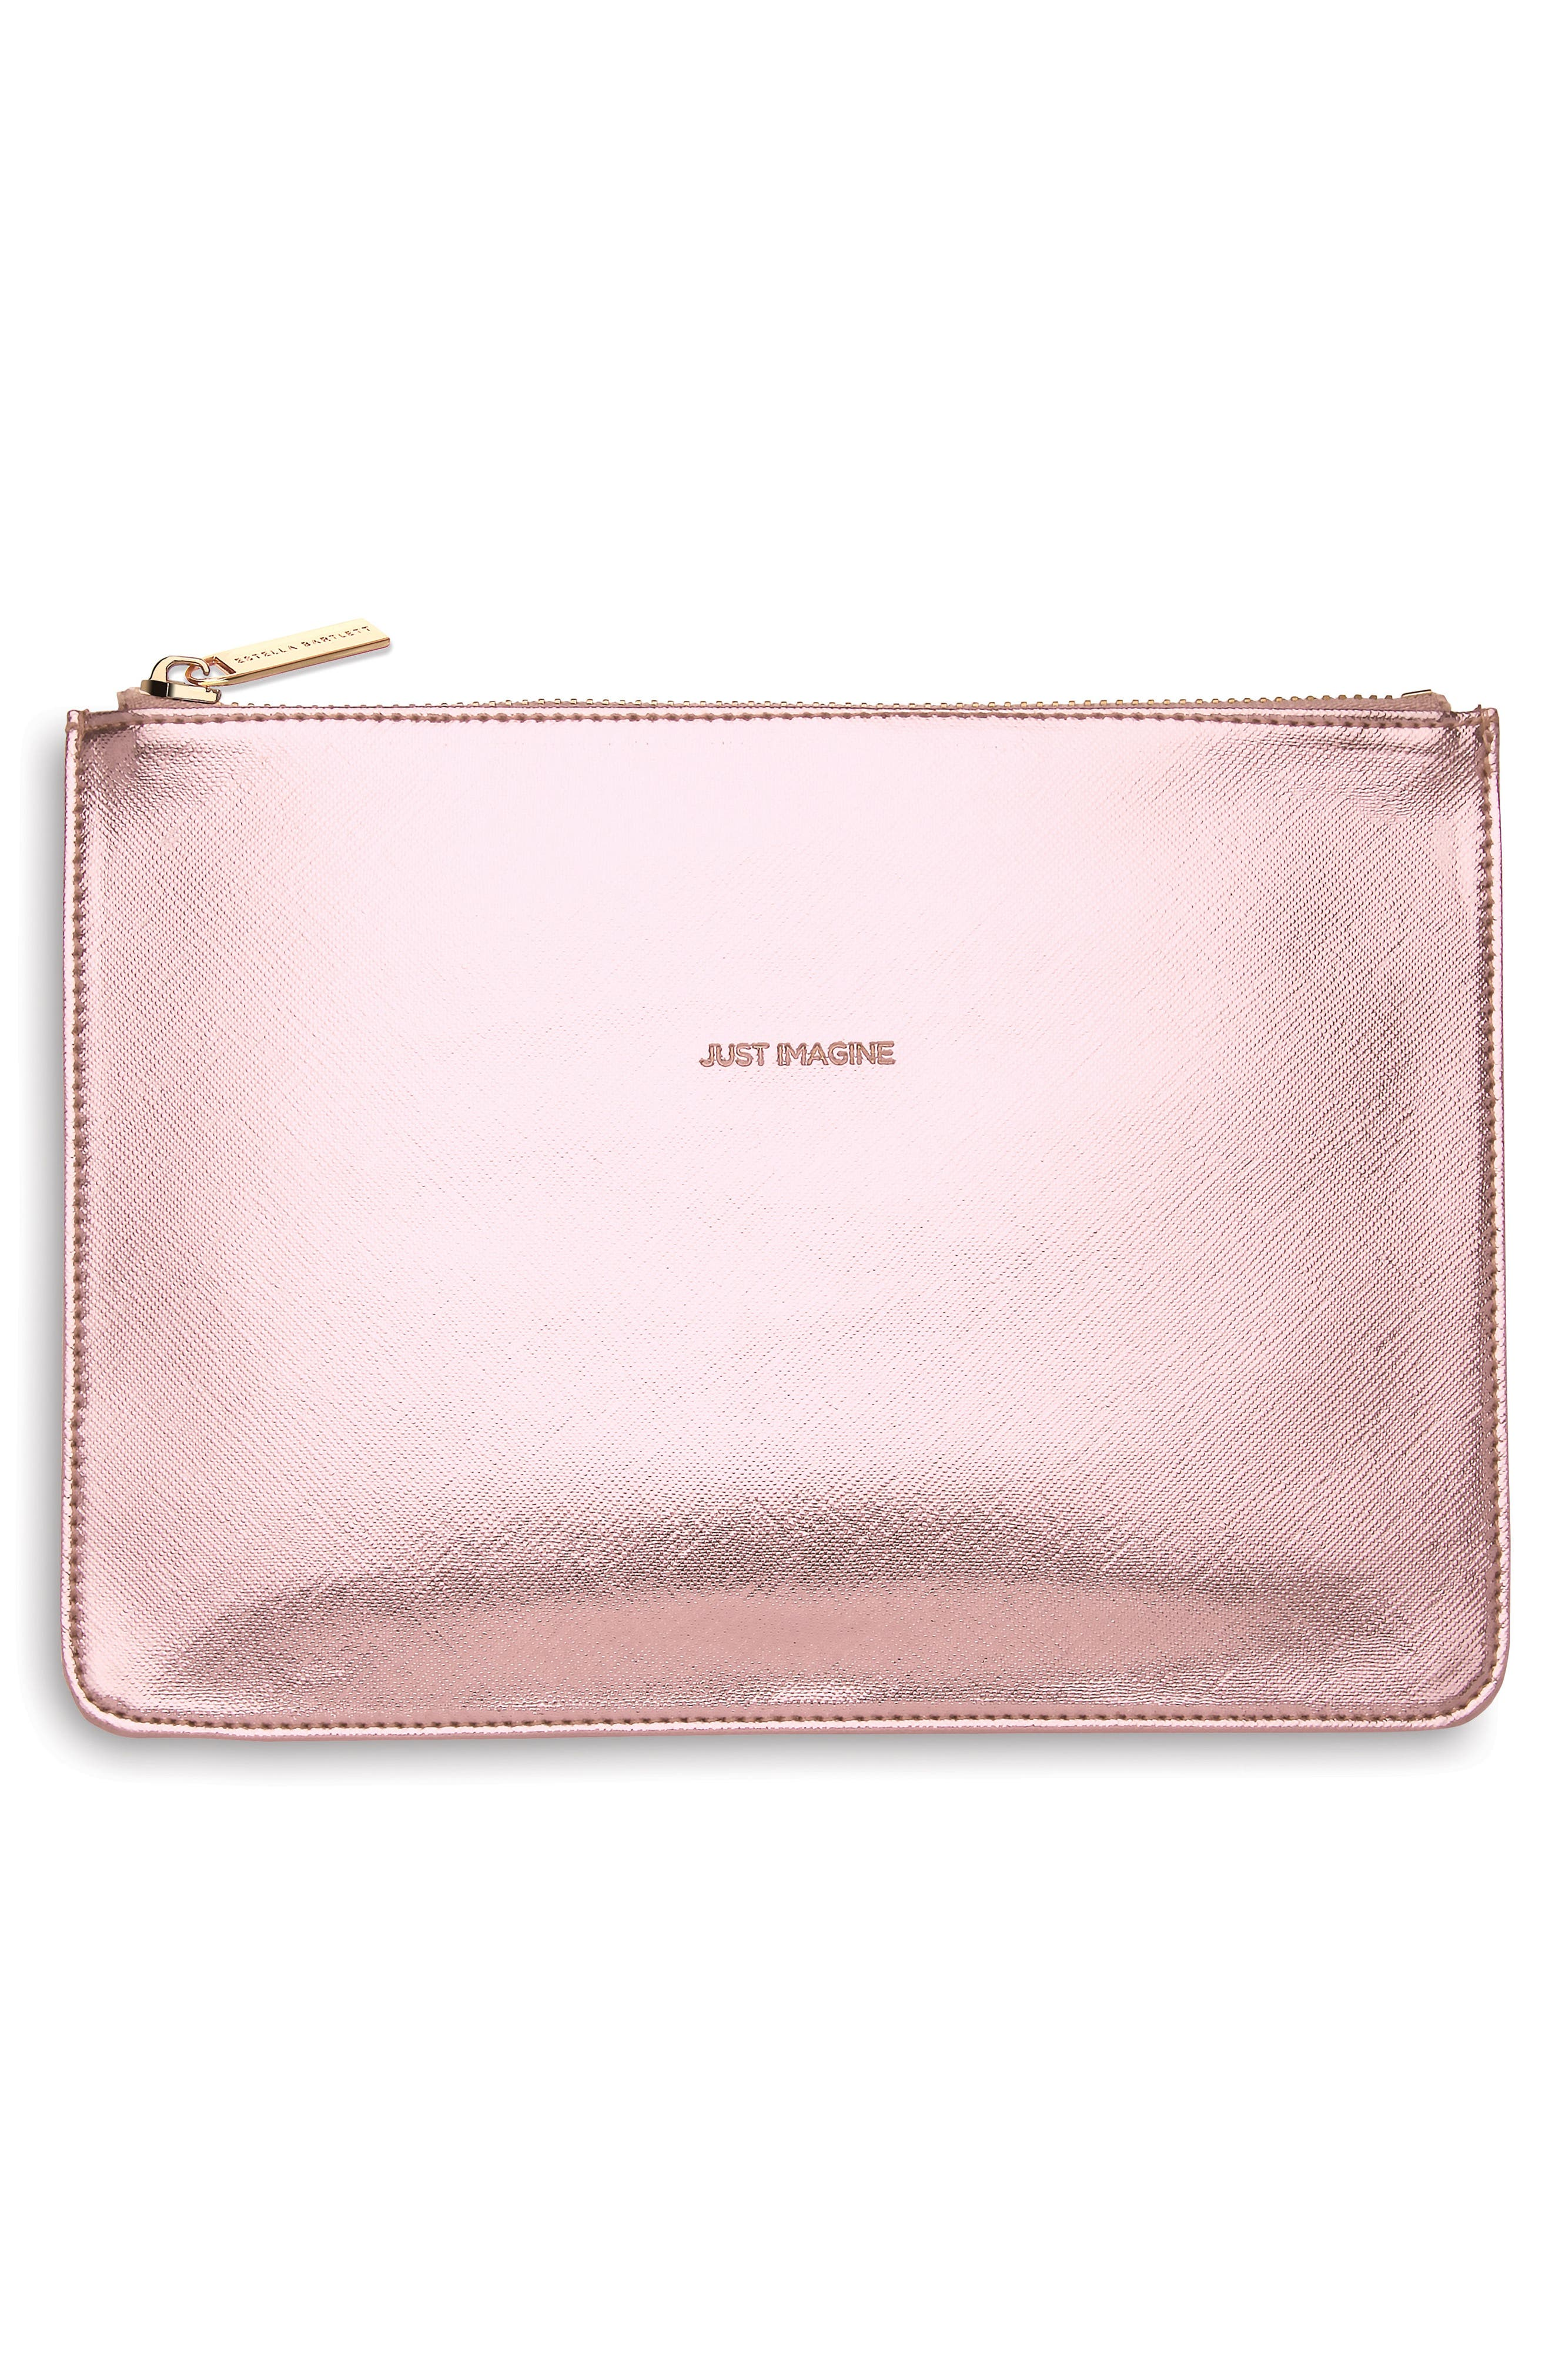 Just Imagine Faux Leather Pouch,                             Main thumbnail 1, color,                             Rose Gold